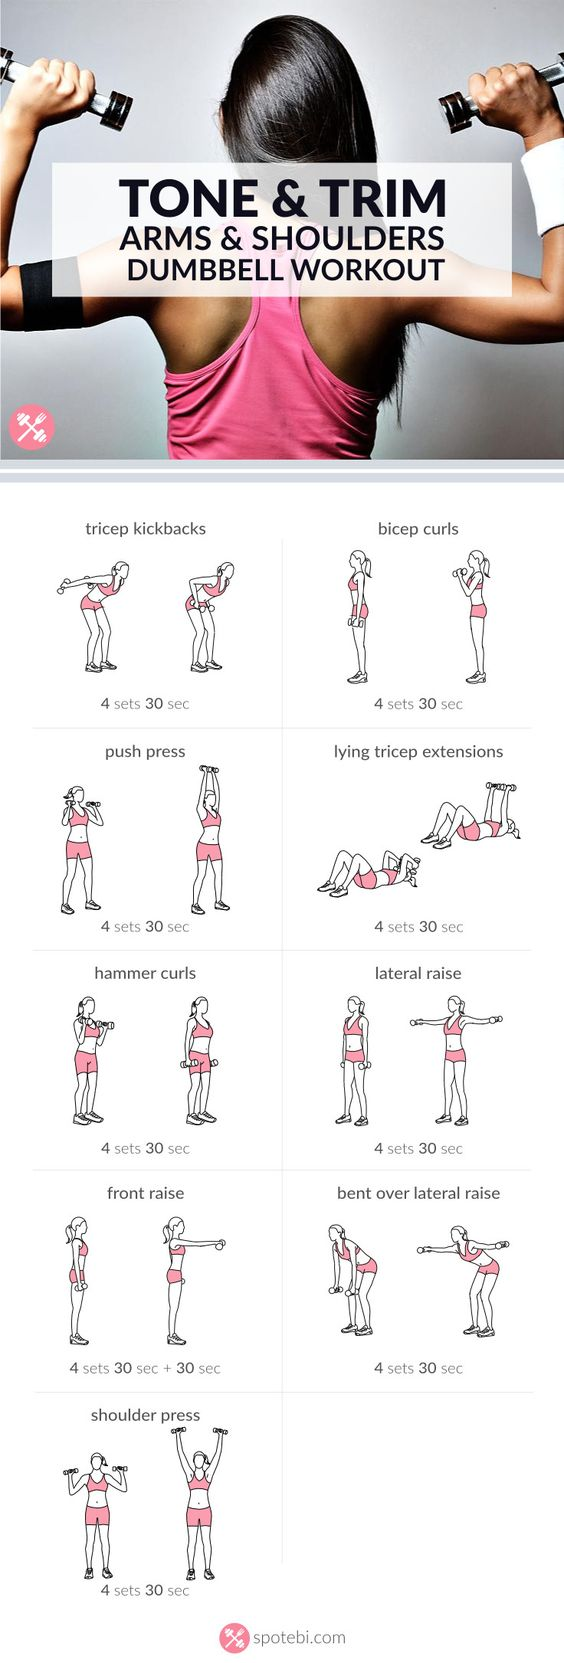 Arm & Shoulders Dumbbell Workout. Each exercises for 30 sec or complete 15-20 repetitions. Rest 30-60 sec, repeat circuit 4 times. Total of 20 mins: